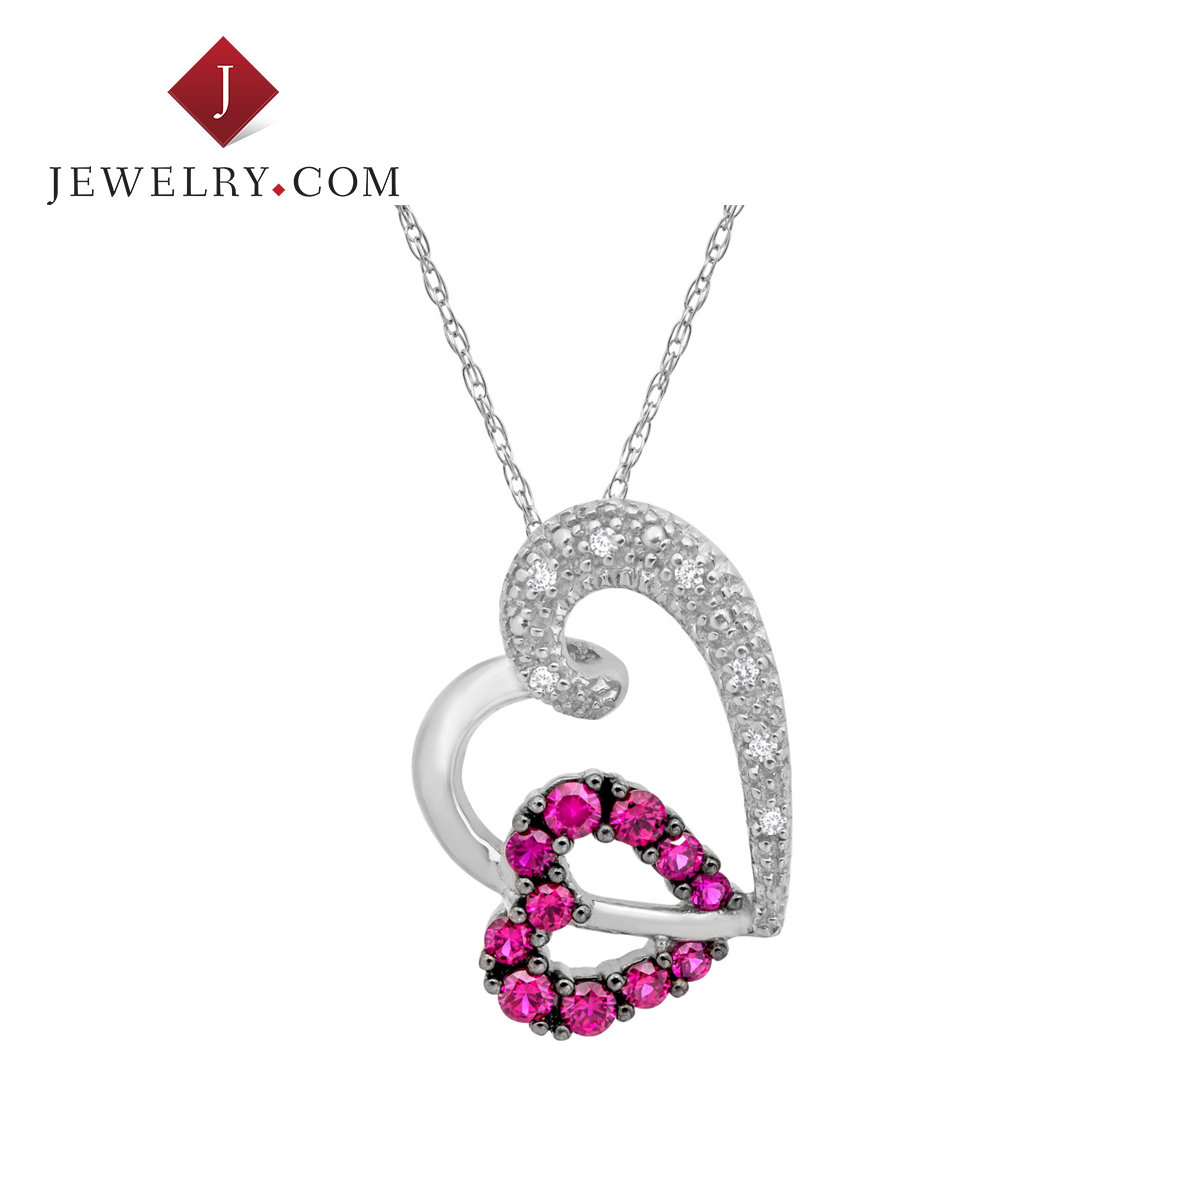 Jewelry.com official 375ct k platinum overlapping ruby diamond heart pendant ms. sweet romance